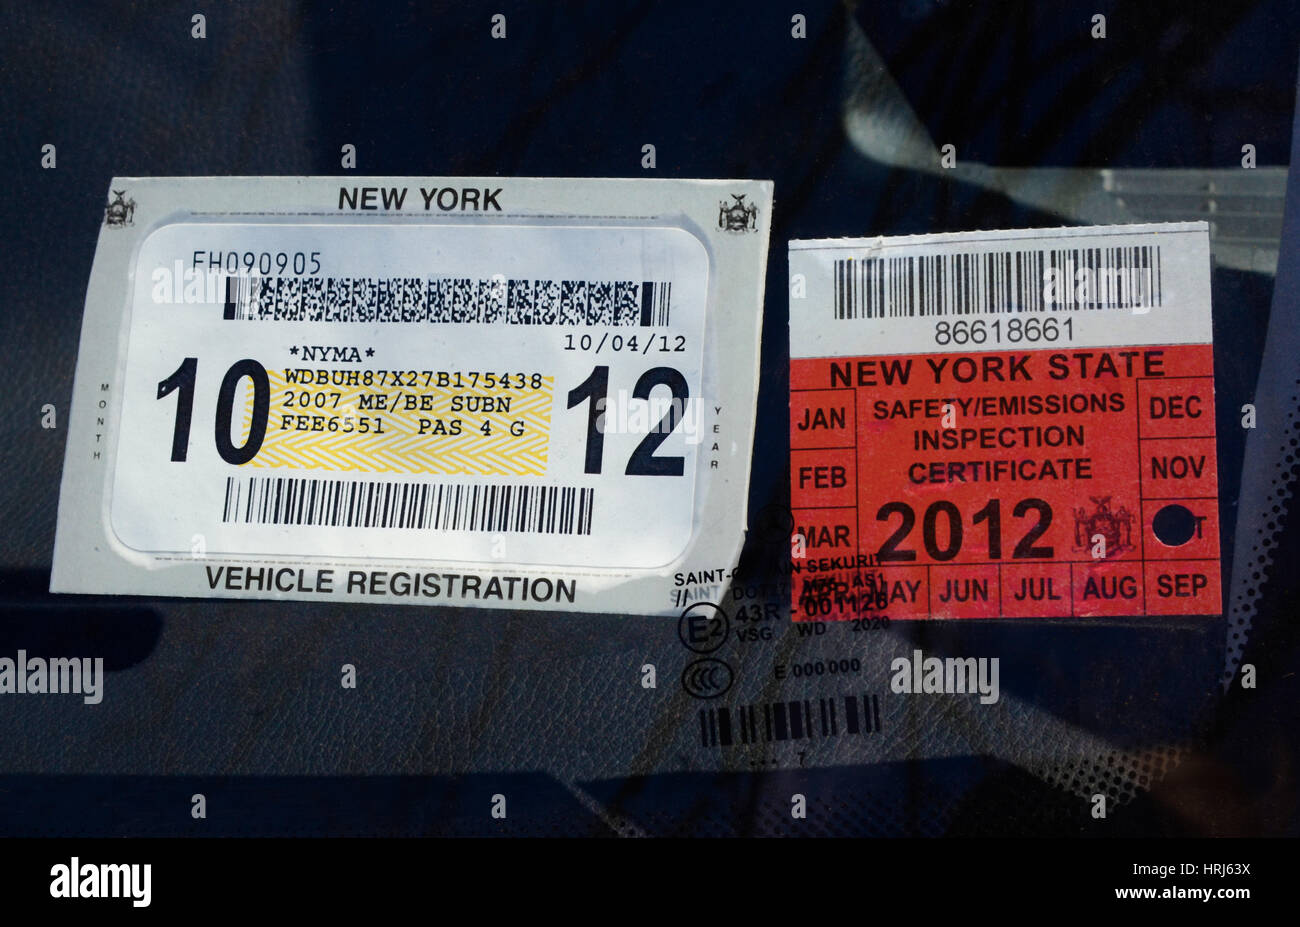 Vehicle Registration and Inspection Stickers